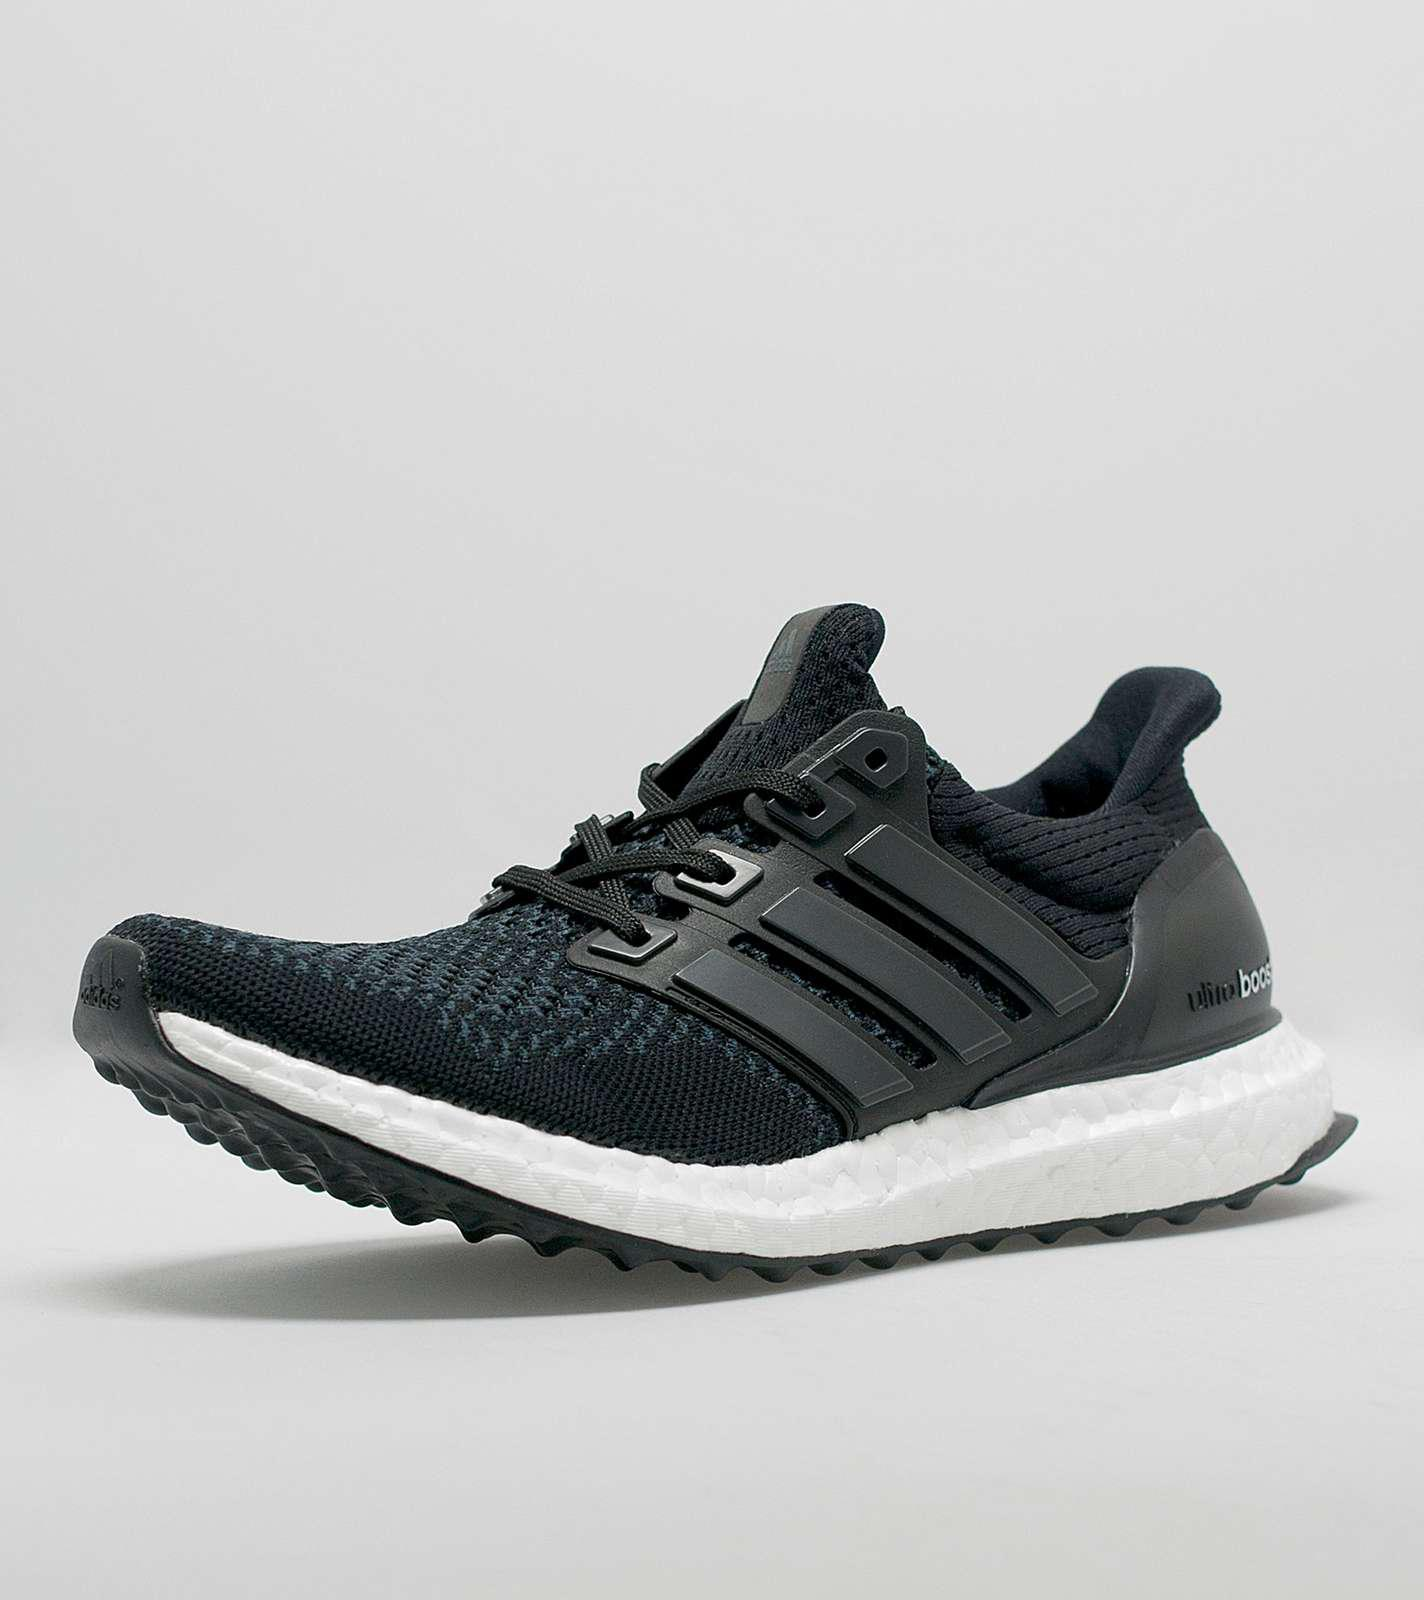 Adidas Ultra Boost Mens Black Size 10